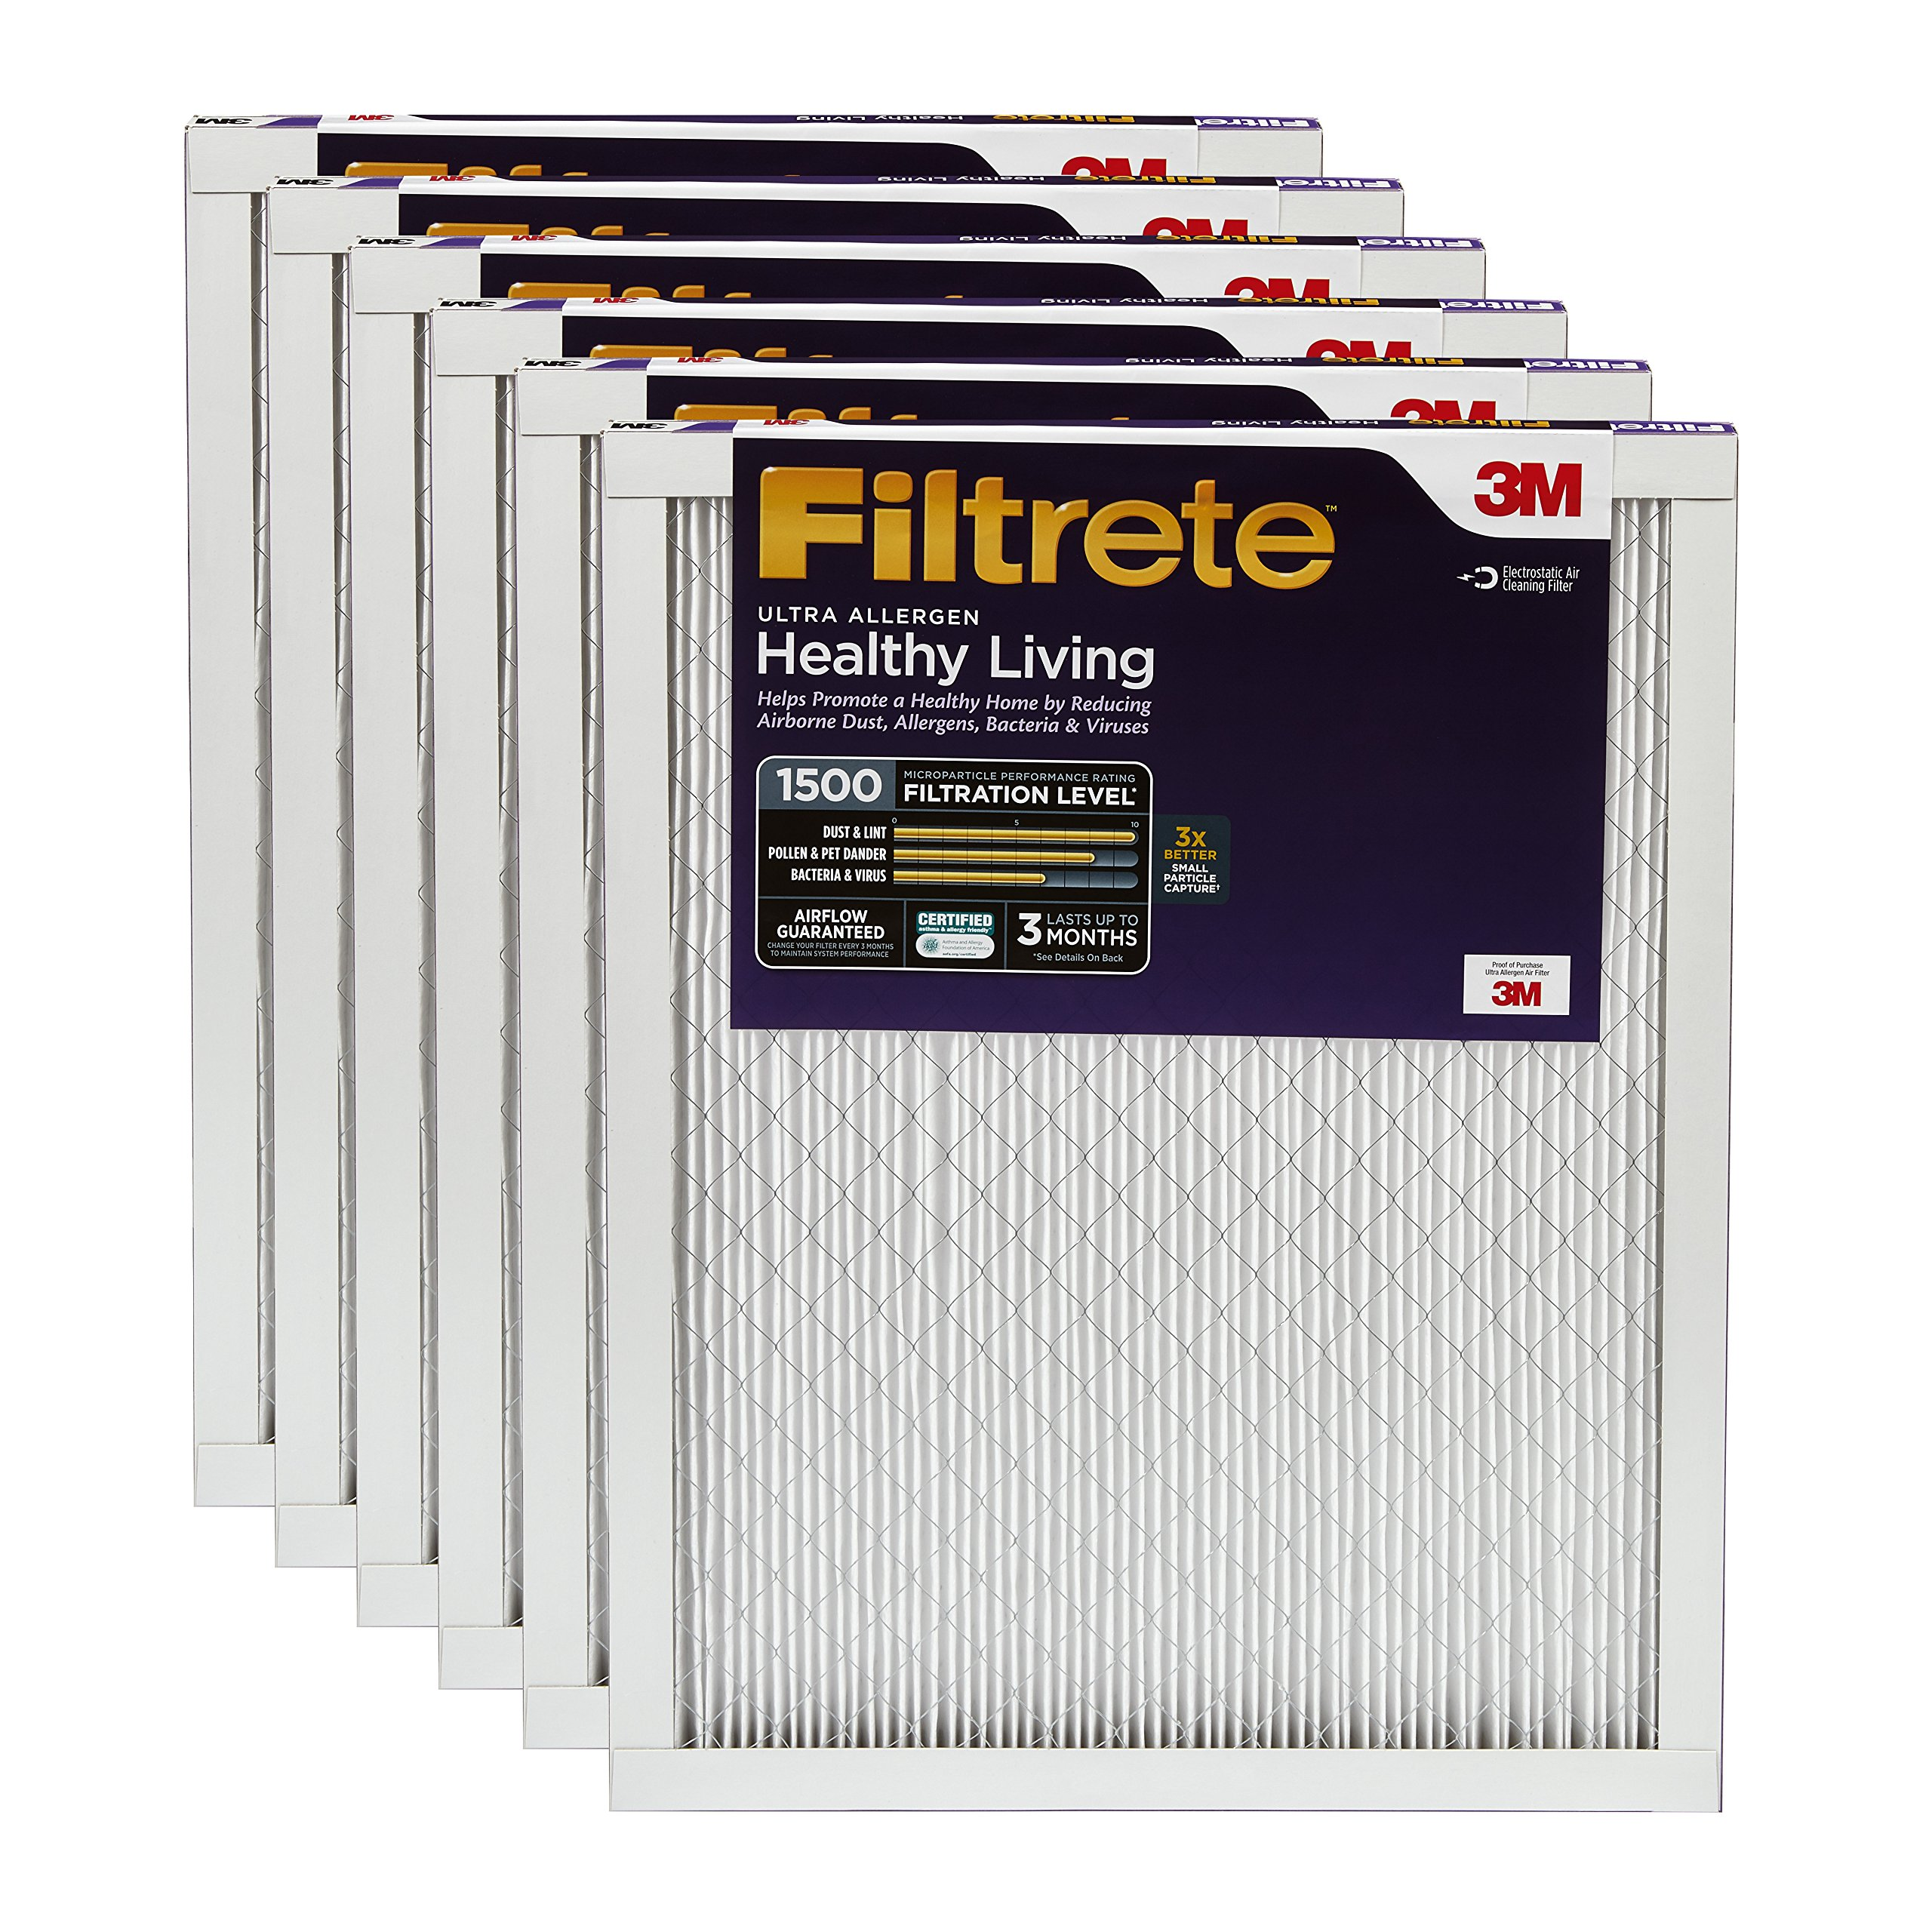 Filtrete MPR 1500 14 x 24 x 1 Healthy Living Ultra Allergen Reduction HVAC Air Filter, 6-Pack